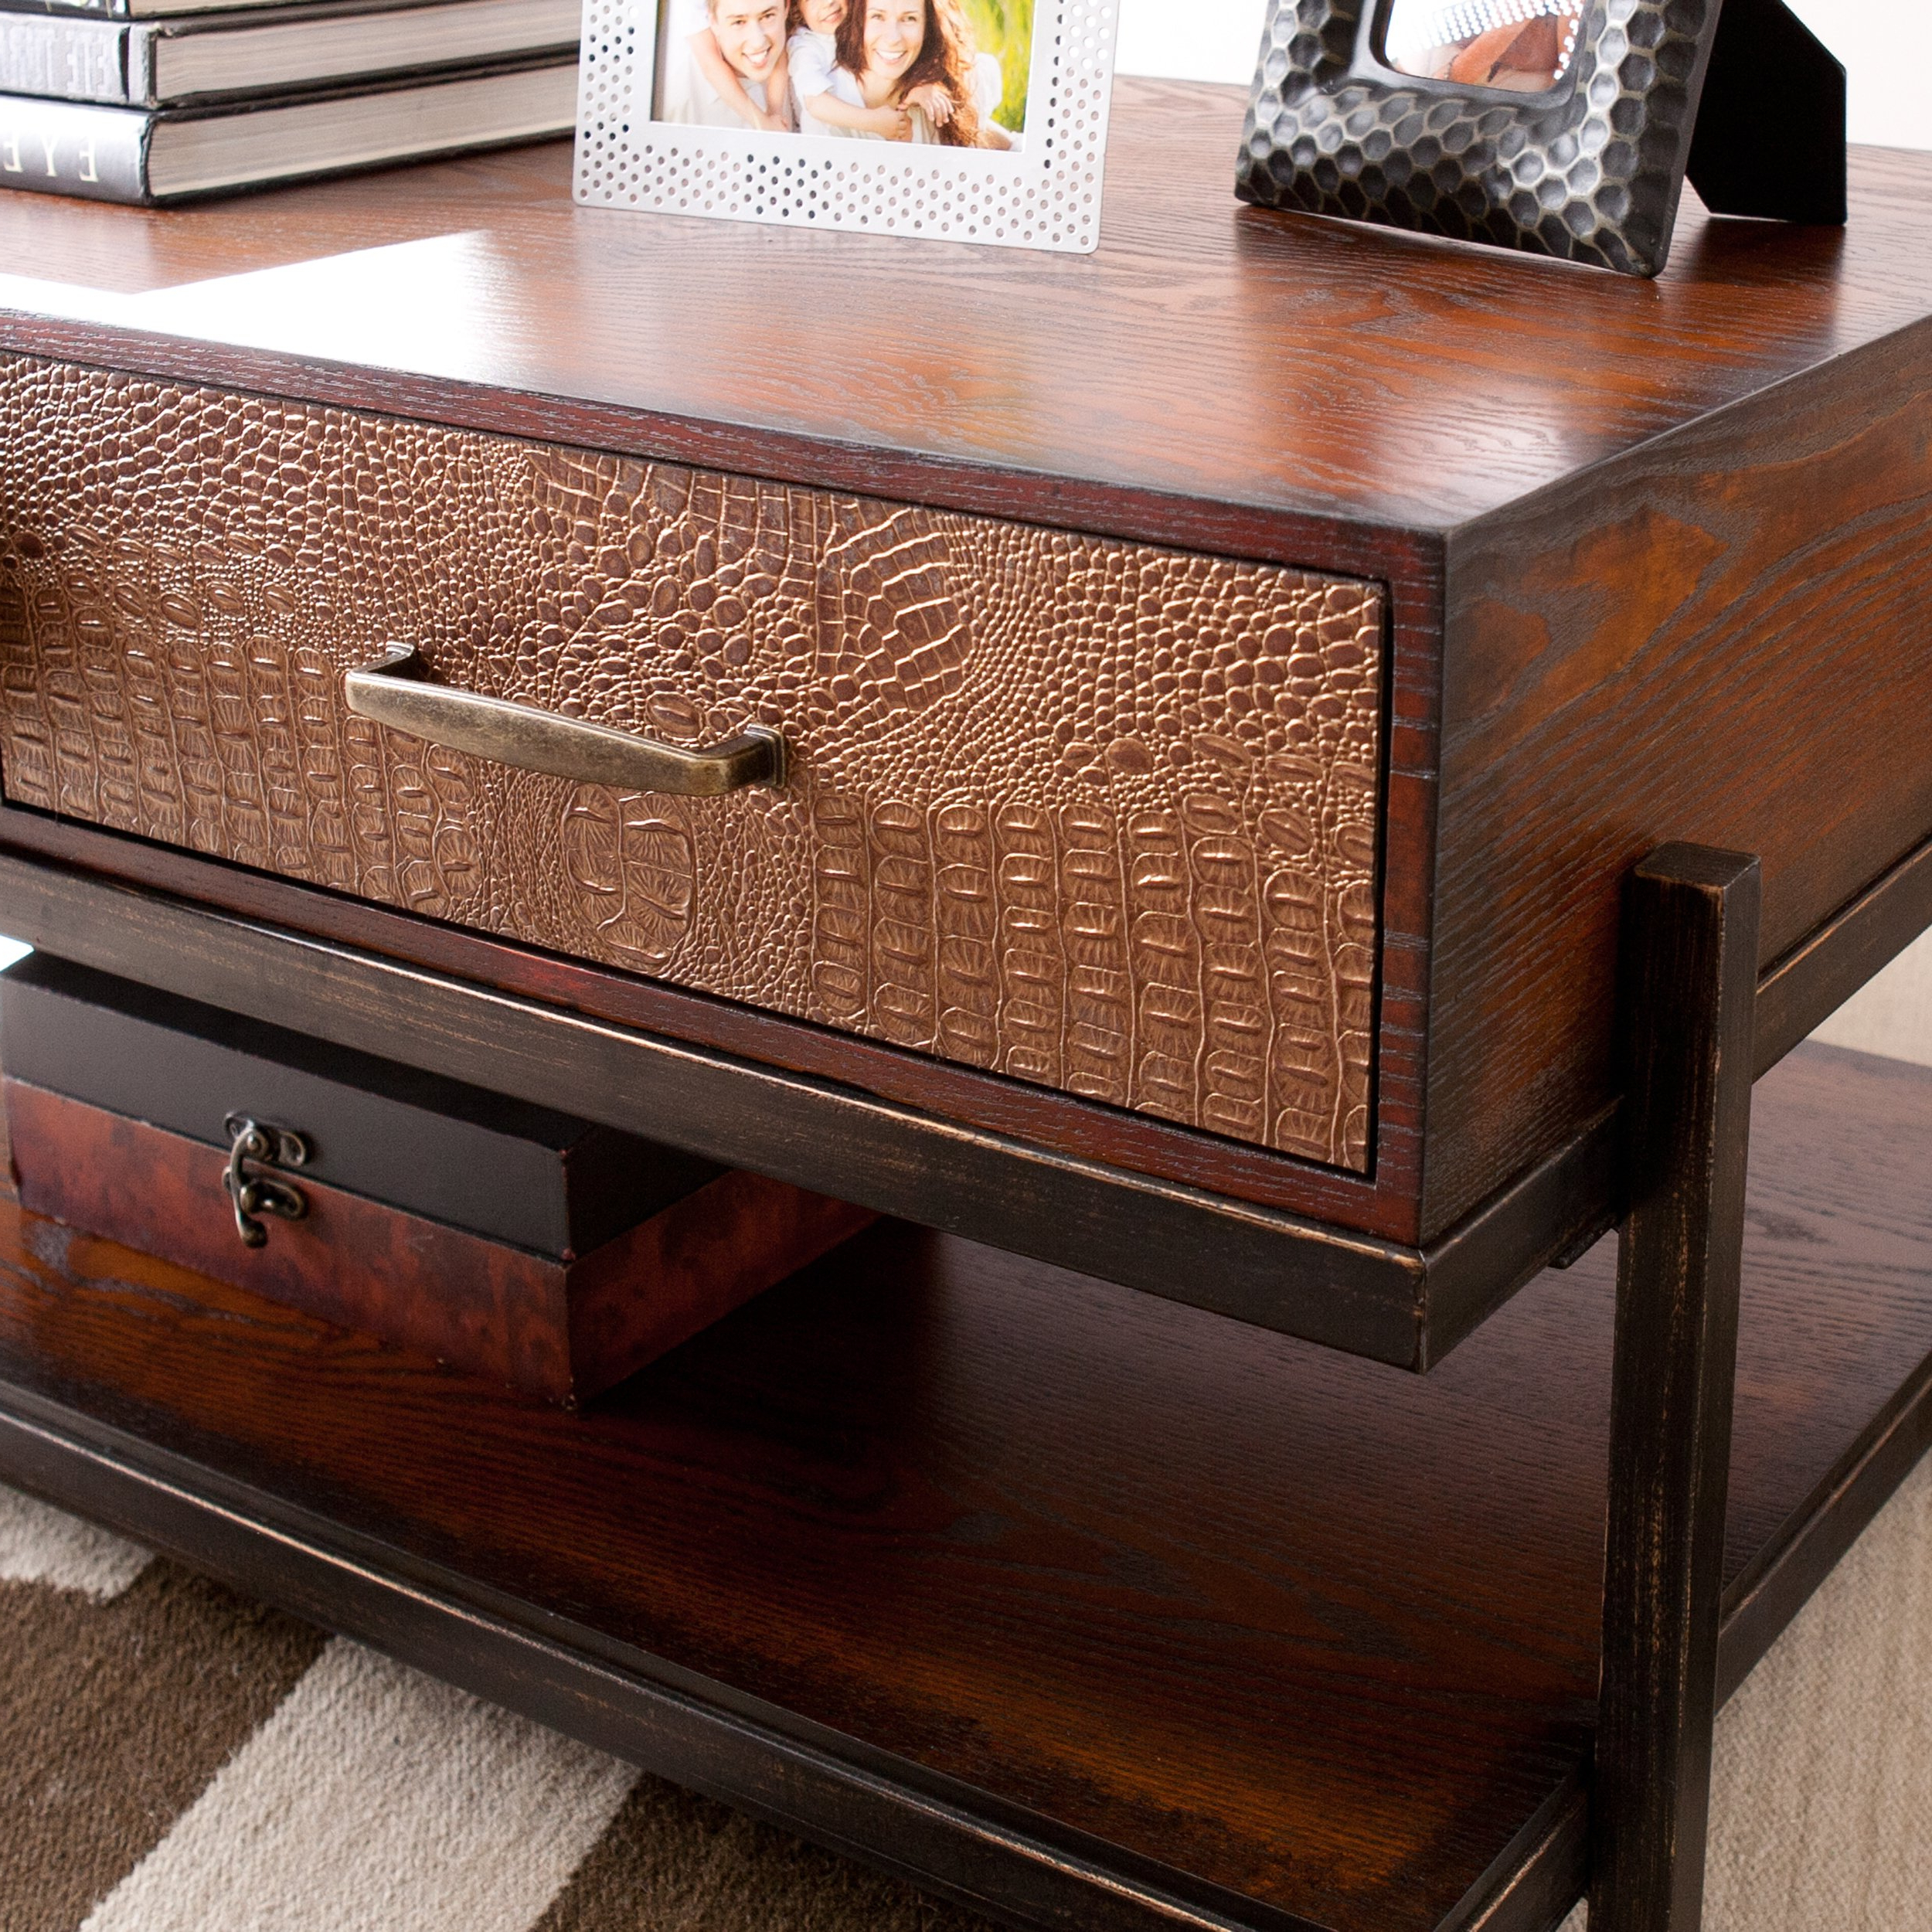 Shop Harper Blvd Palmer Cocktail/ Coffee Table – Free Shipping Today With Regard To Popular Palmer Storage Cocktail Tables (View 5 of 20)